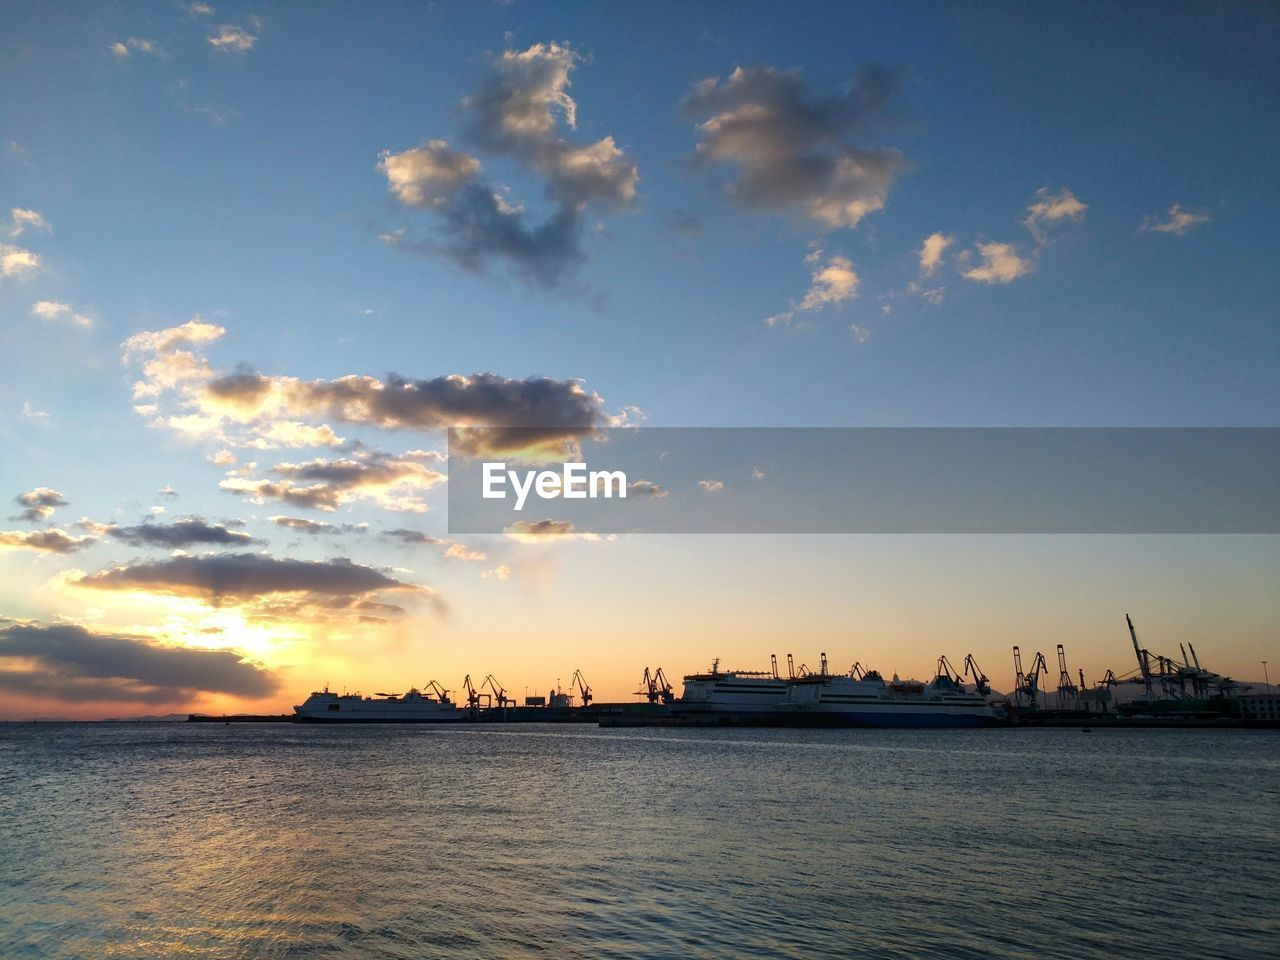 sky, sunset, water, sea, cloud - sky, scenics, nature, no people, waterfront, beauty in nature, outdoors, tranquility, tranquil scene, nautical vessel, building exterior, architecture, day, city, offshore platform